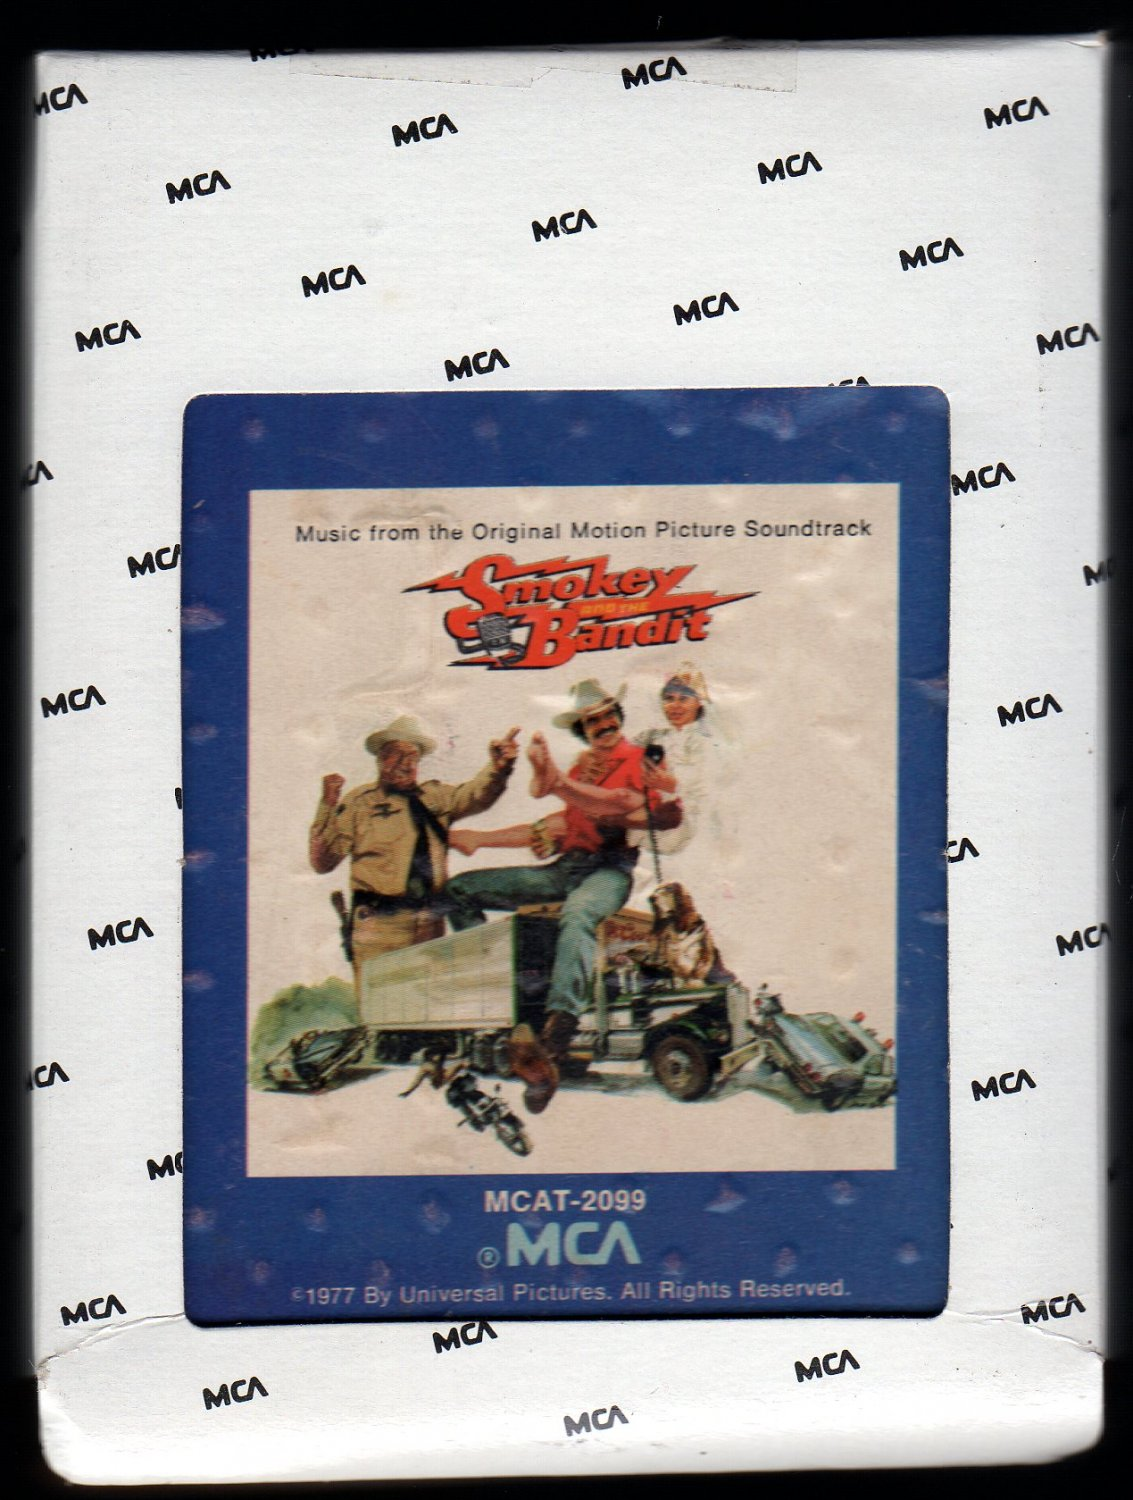 Smokey And The Bandit - Original Motion Picture Soundtrack 1977 MCA AC4 8-TRACK TAPE